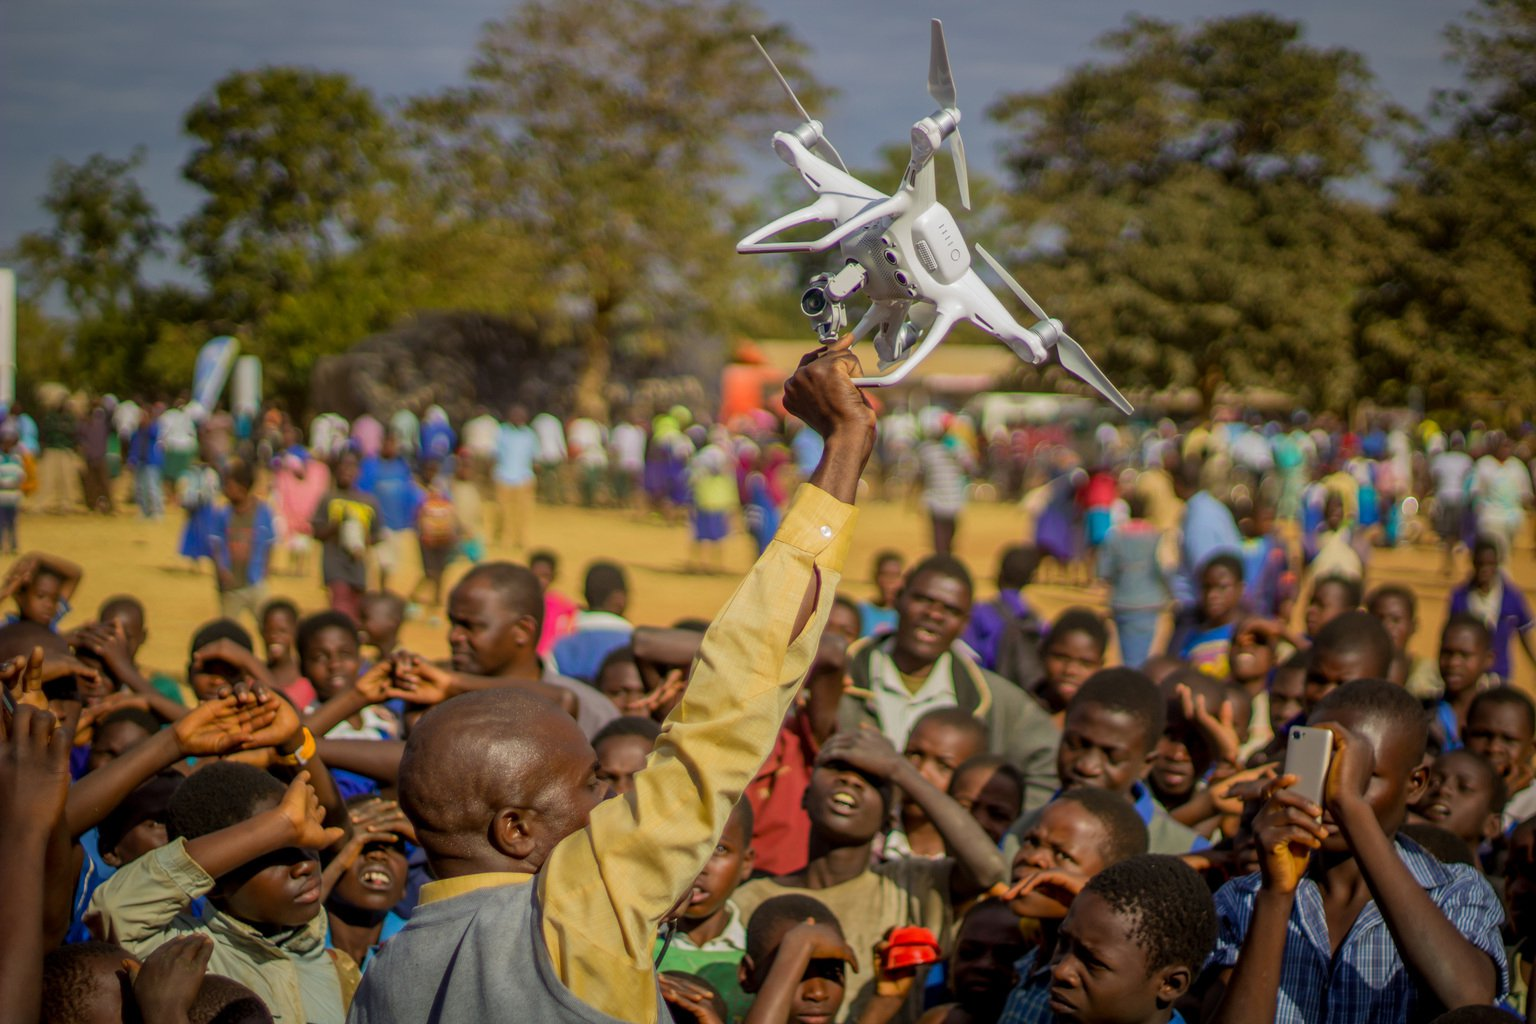 Drones-Malawi-Health-Care-2.jpg